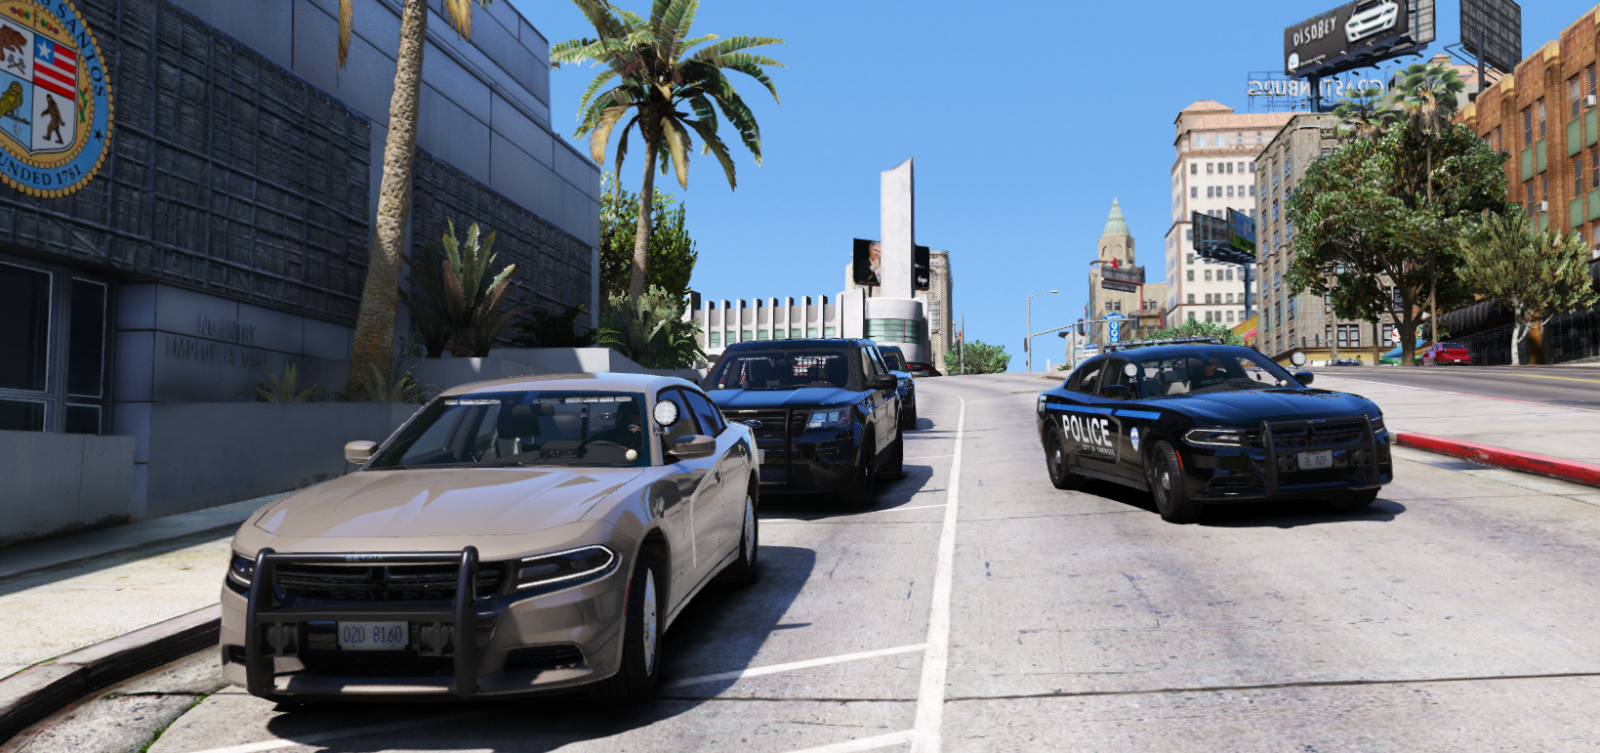 Vehicles of Vinewood